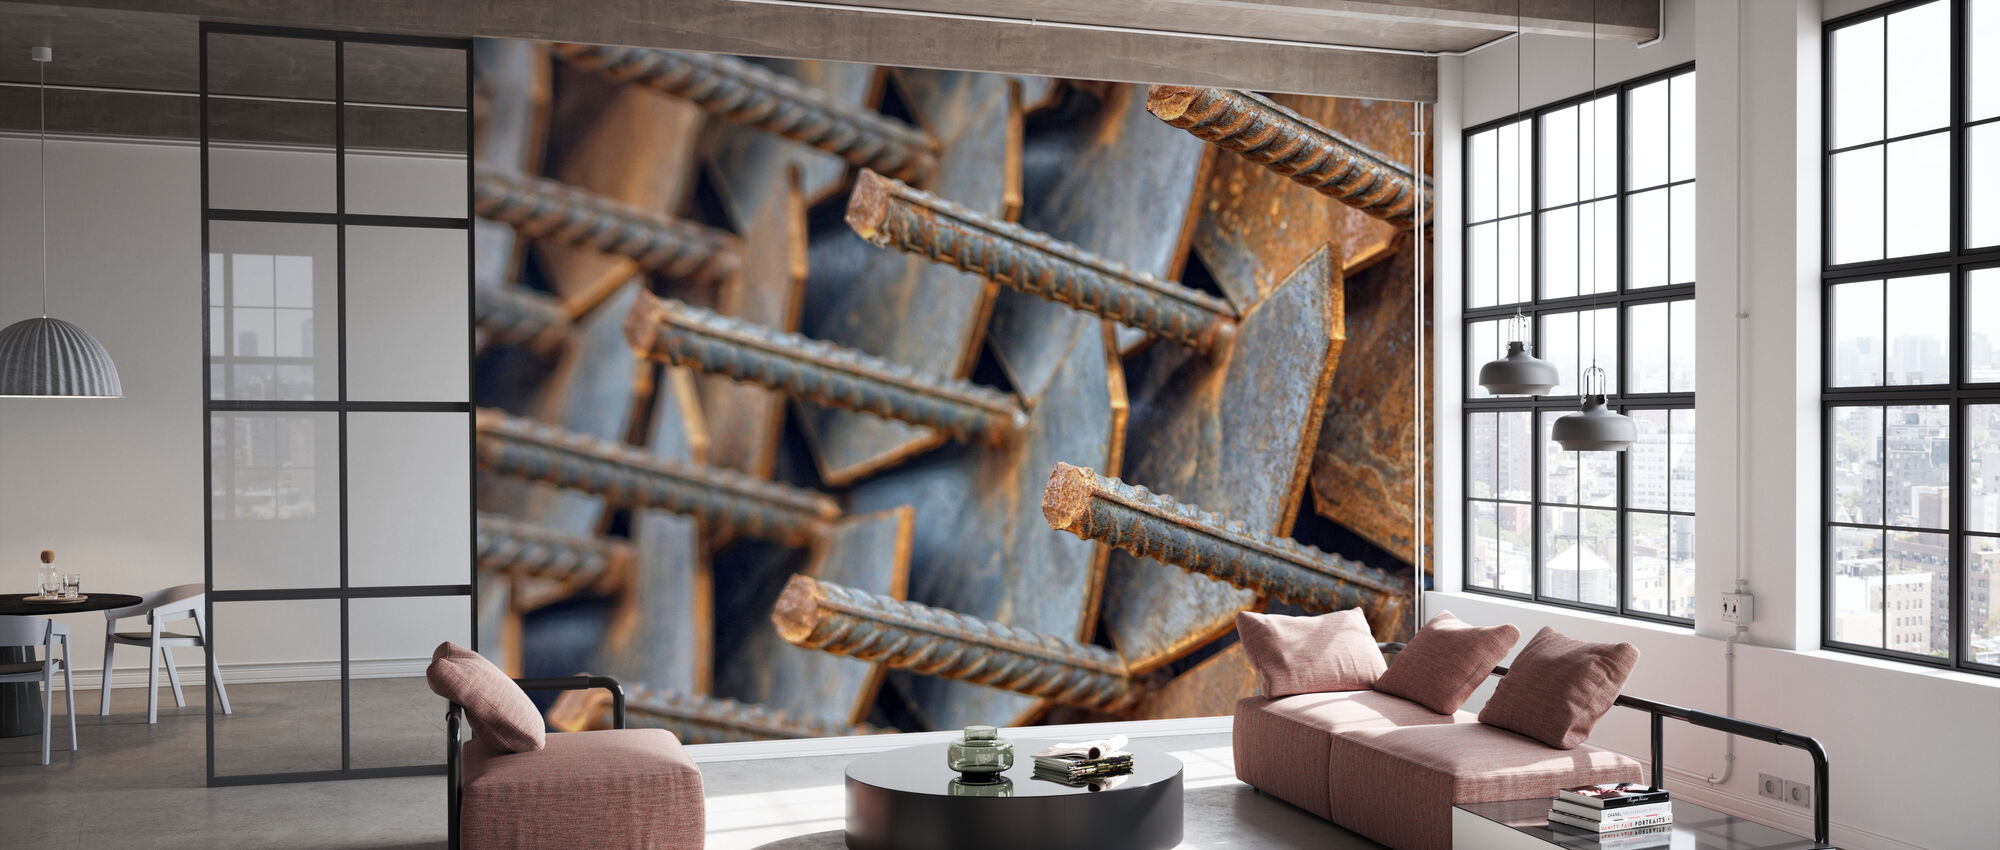 Reinforcement Rods - Wallpaper - Office